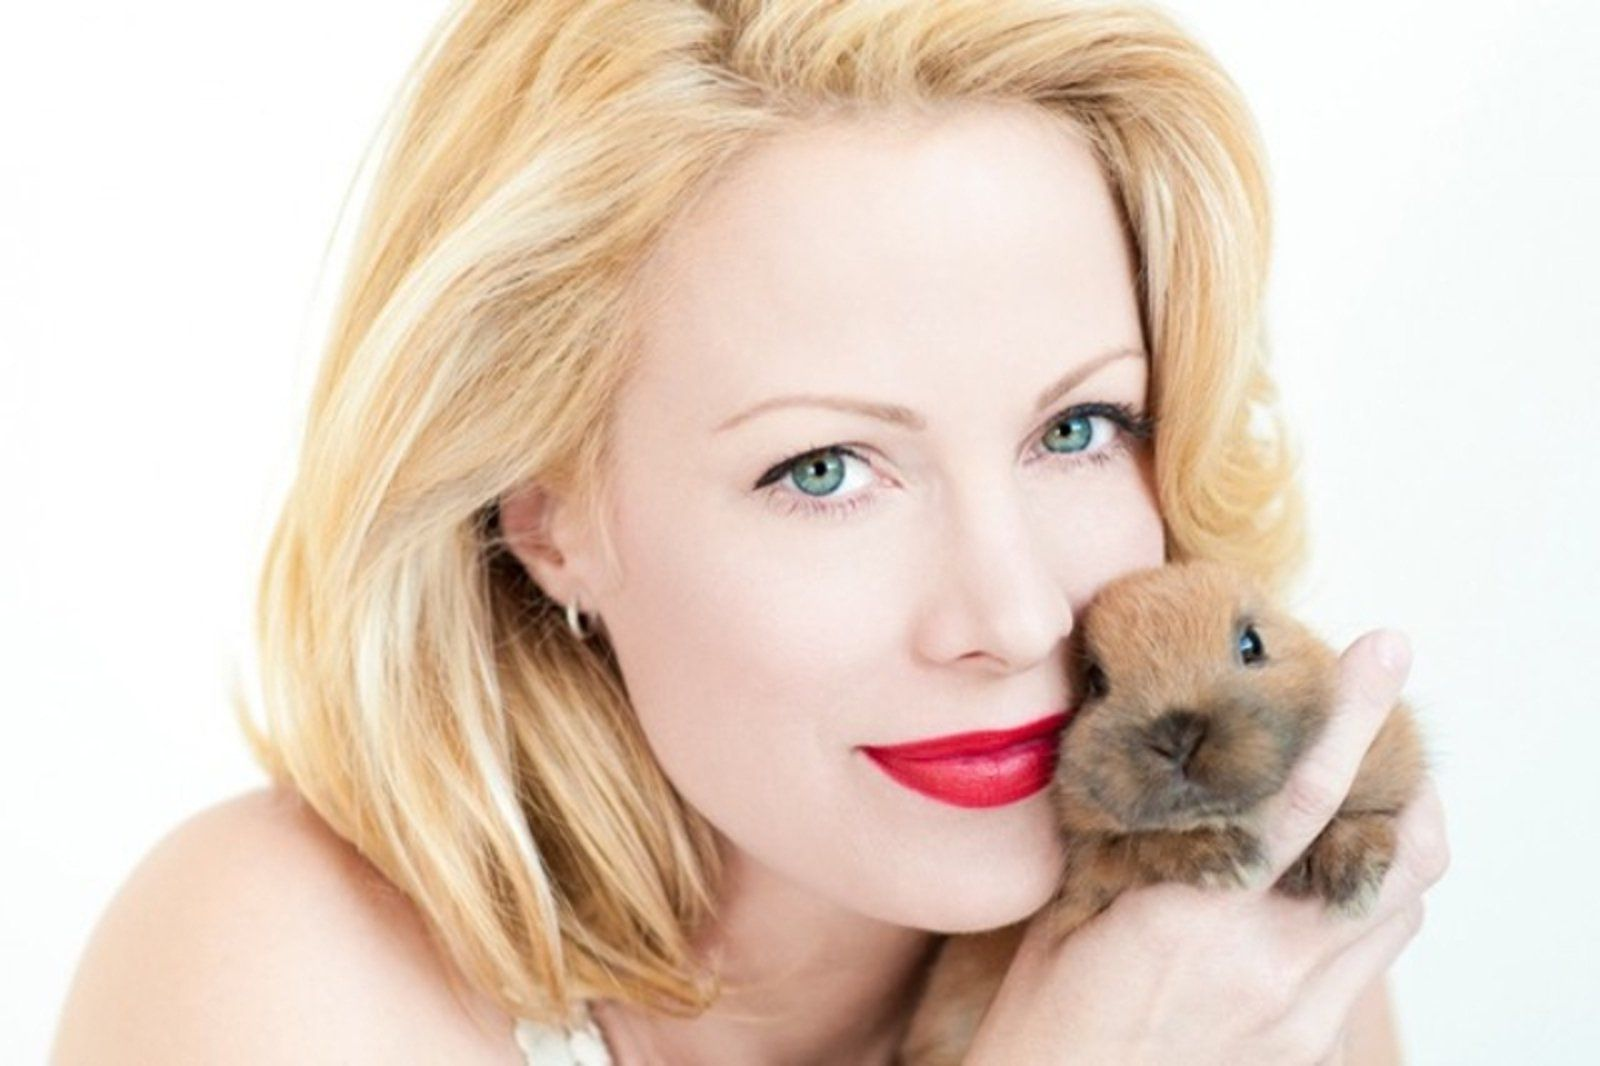 In the face of the pet homelessness situation, the renowned actress and animal activist Alison Eastwood is determined to make a difference.